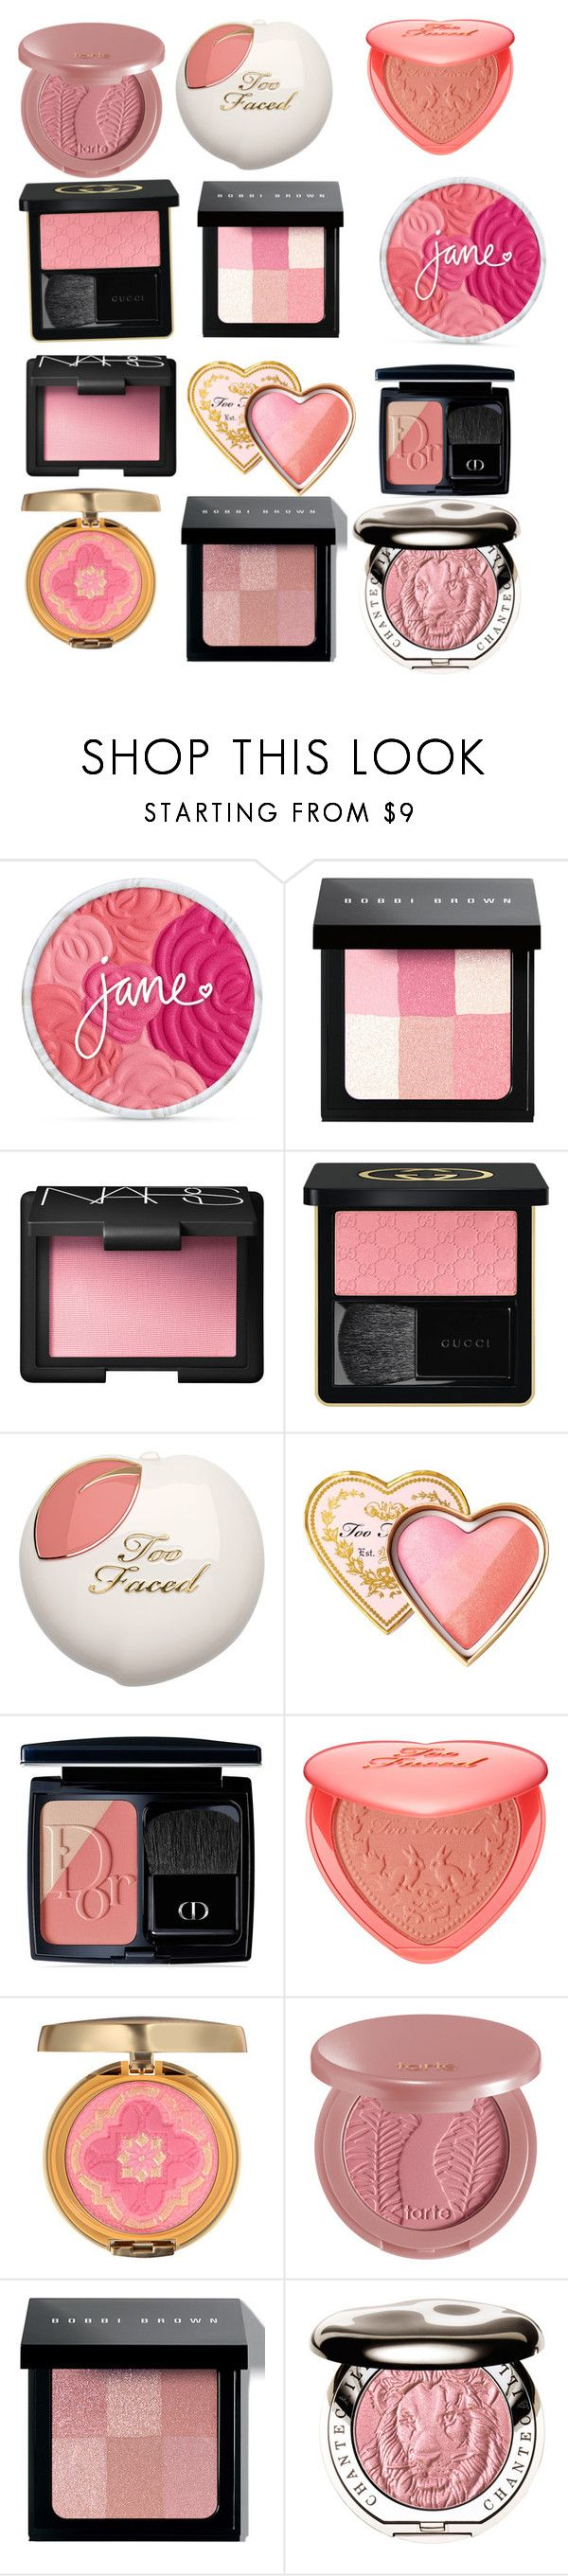 """Blush"" by maryann-rose on Polyvore featuring beauty, Bobbi Brown Cosmetics, NARS Cosmetics, Gucci, Too Faced Cosmetics, Christian Dior, Physicians Formula, tarte and Chantecaille"